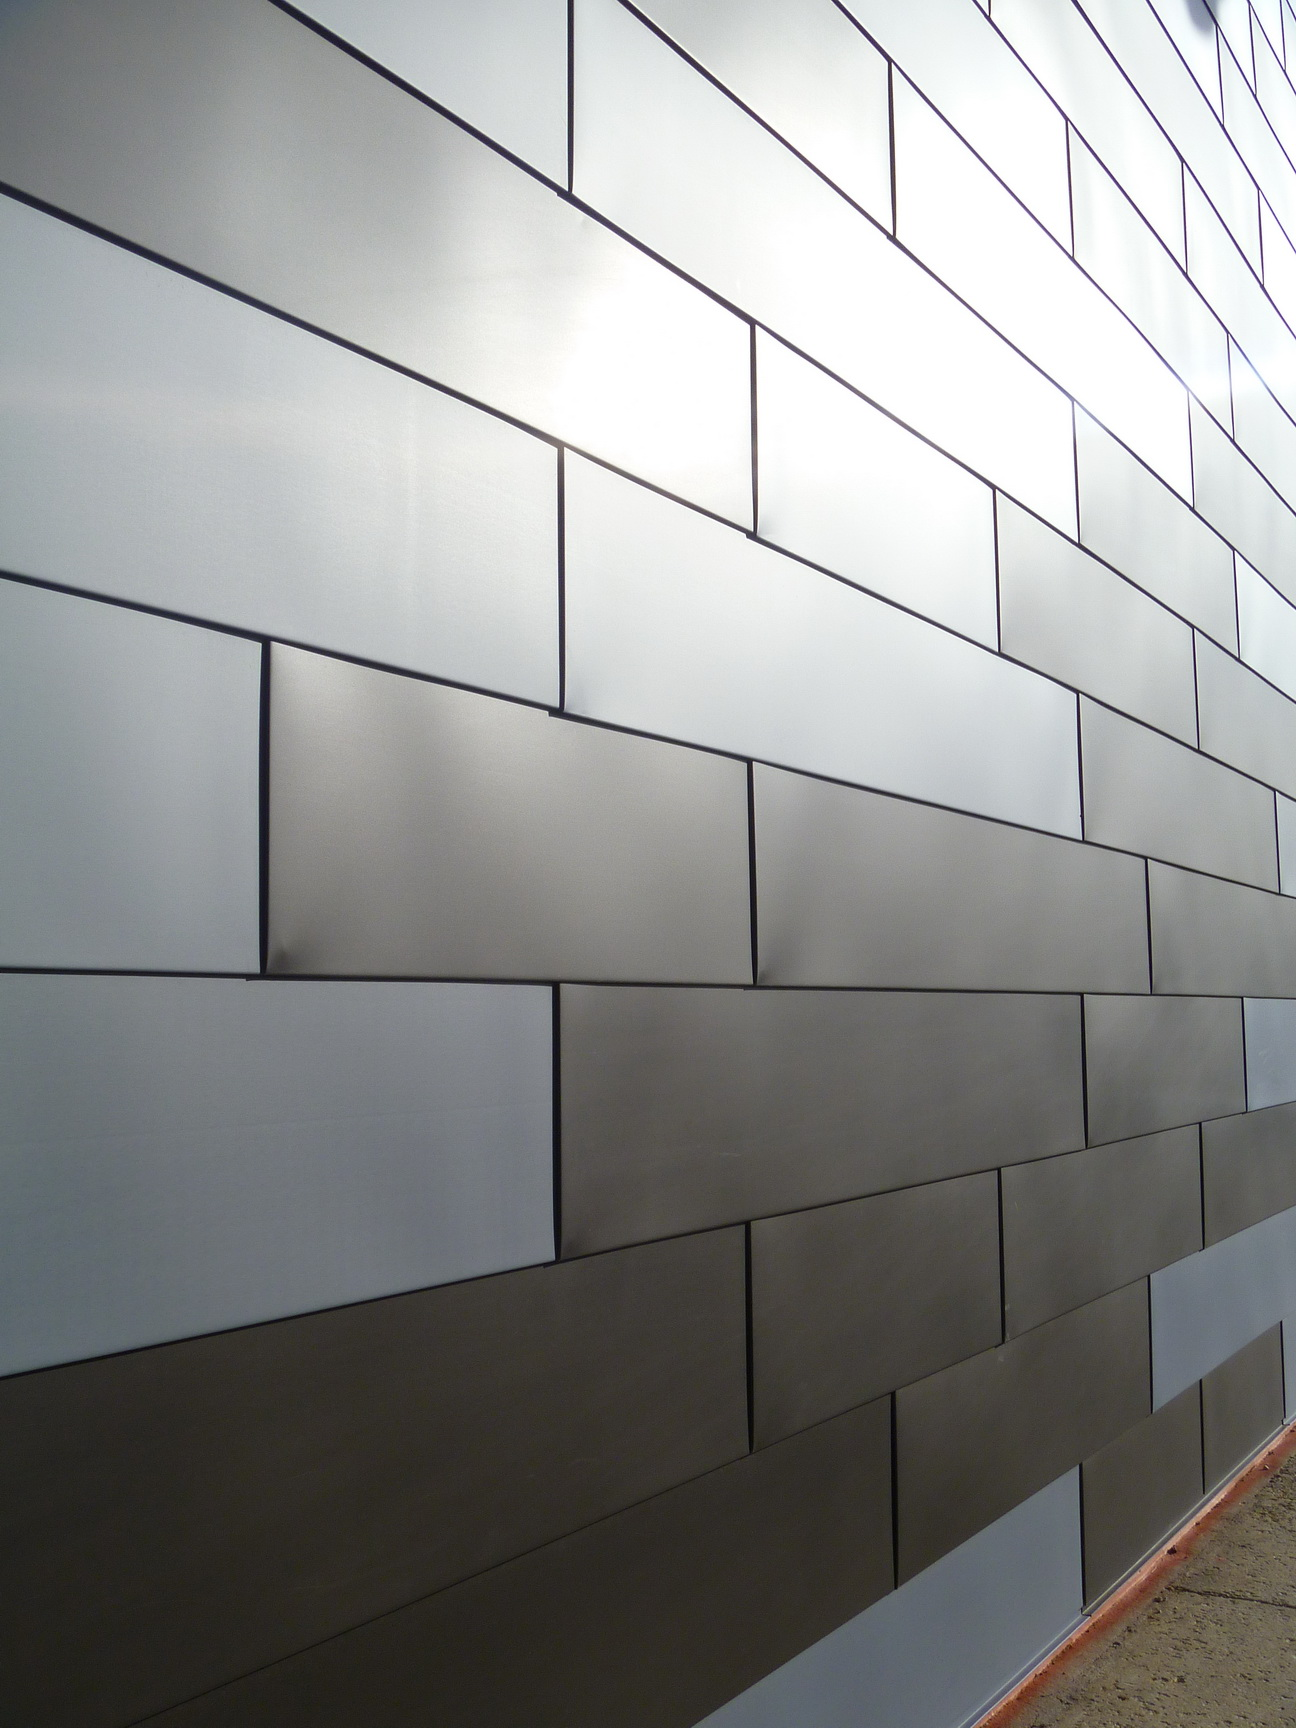 Metal Panels For Walls life expectancy | metal construction association blog